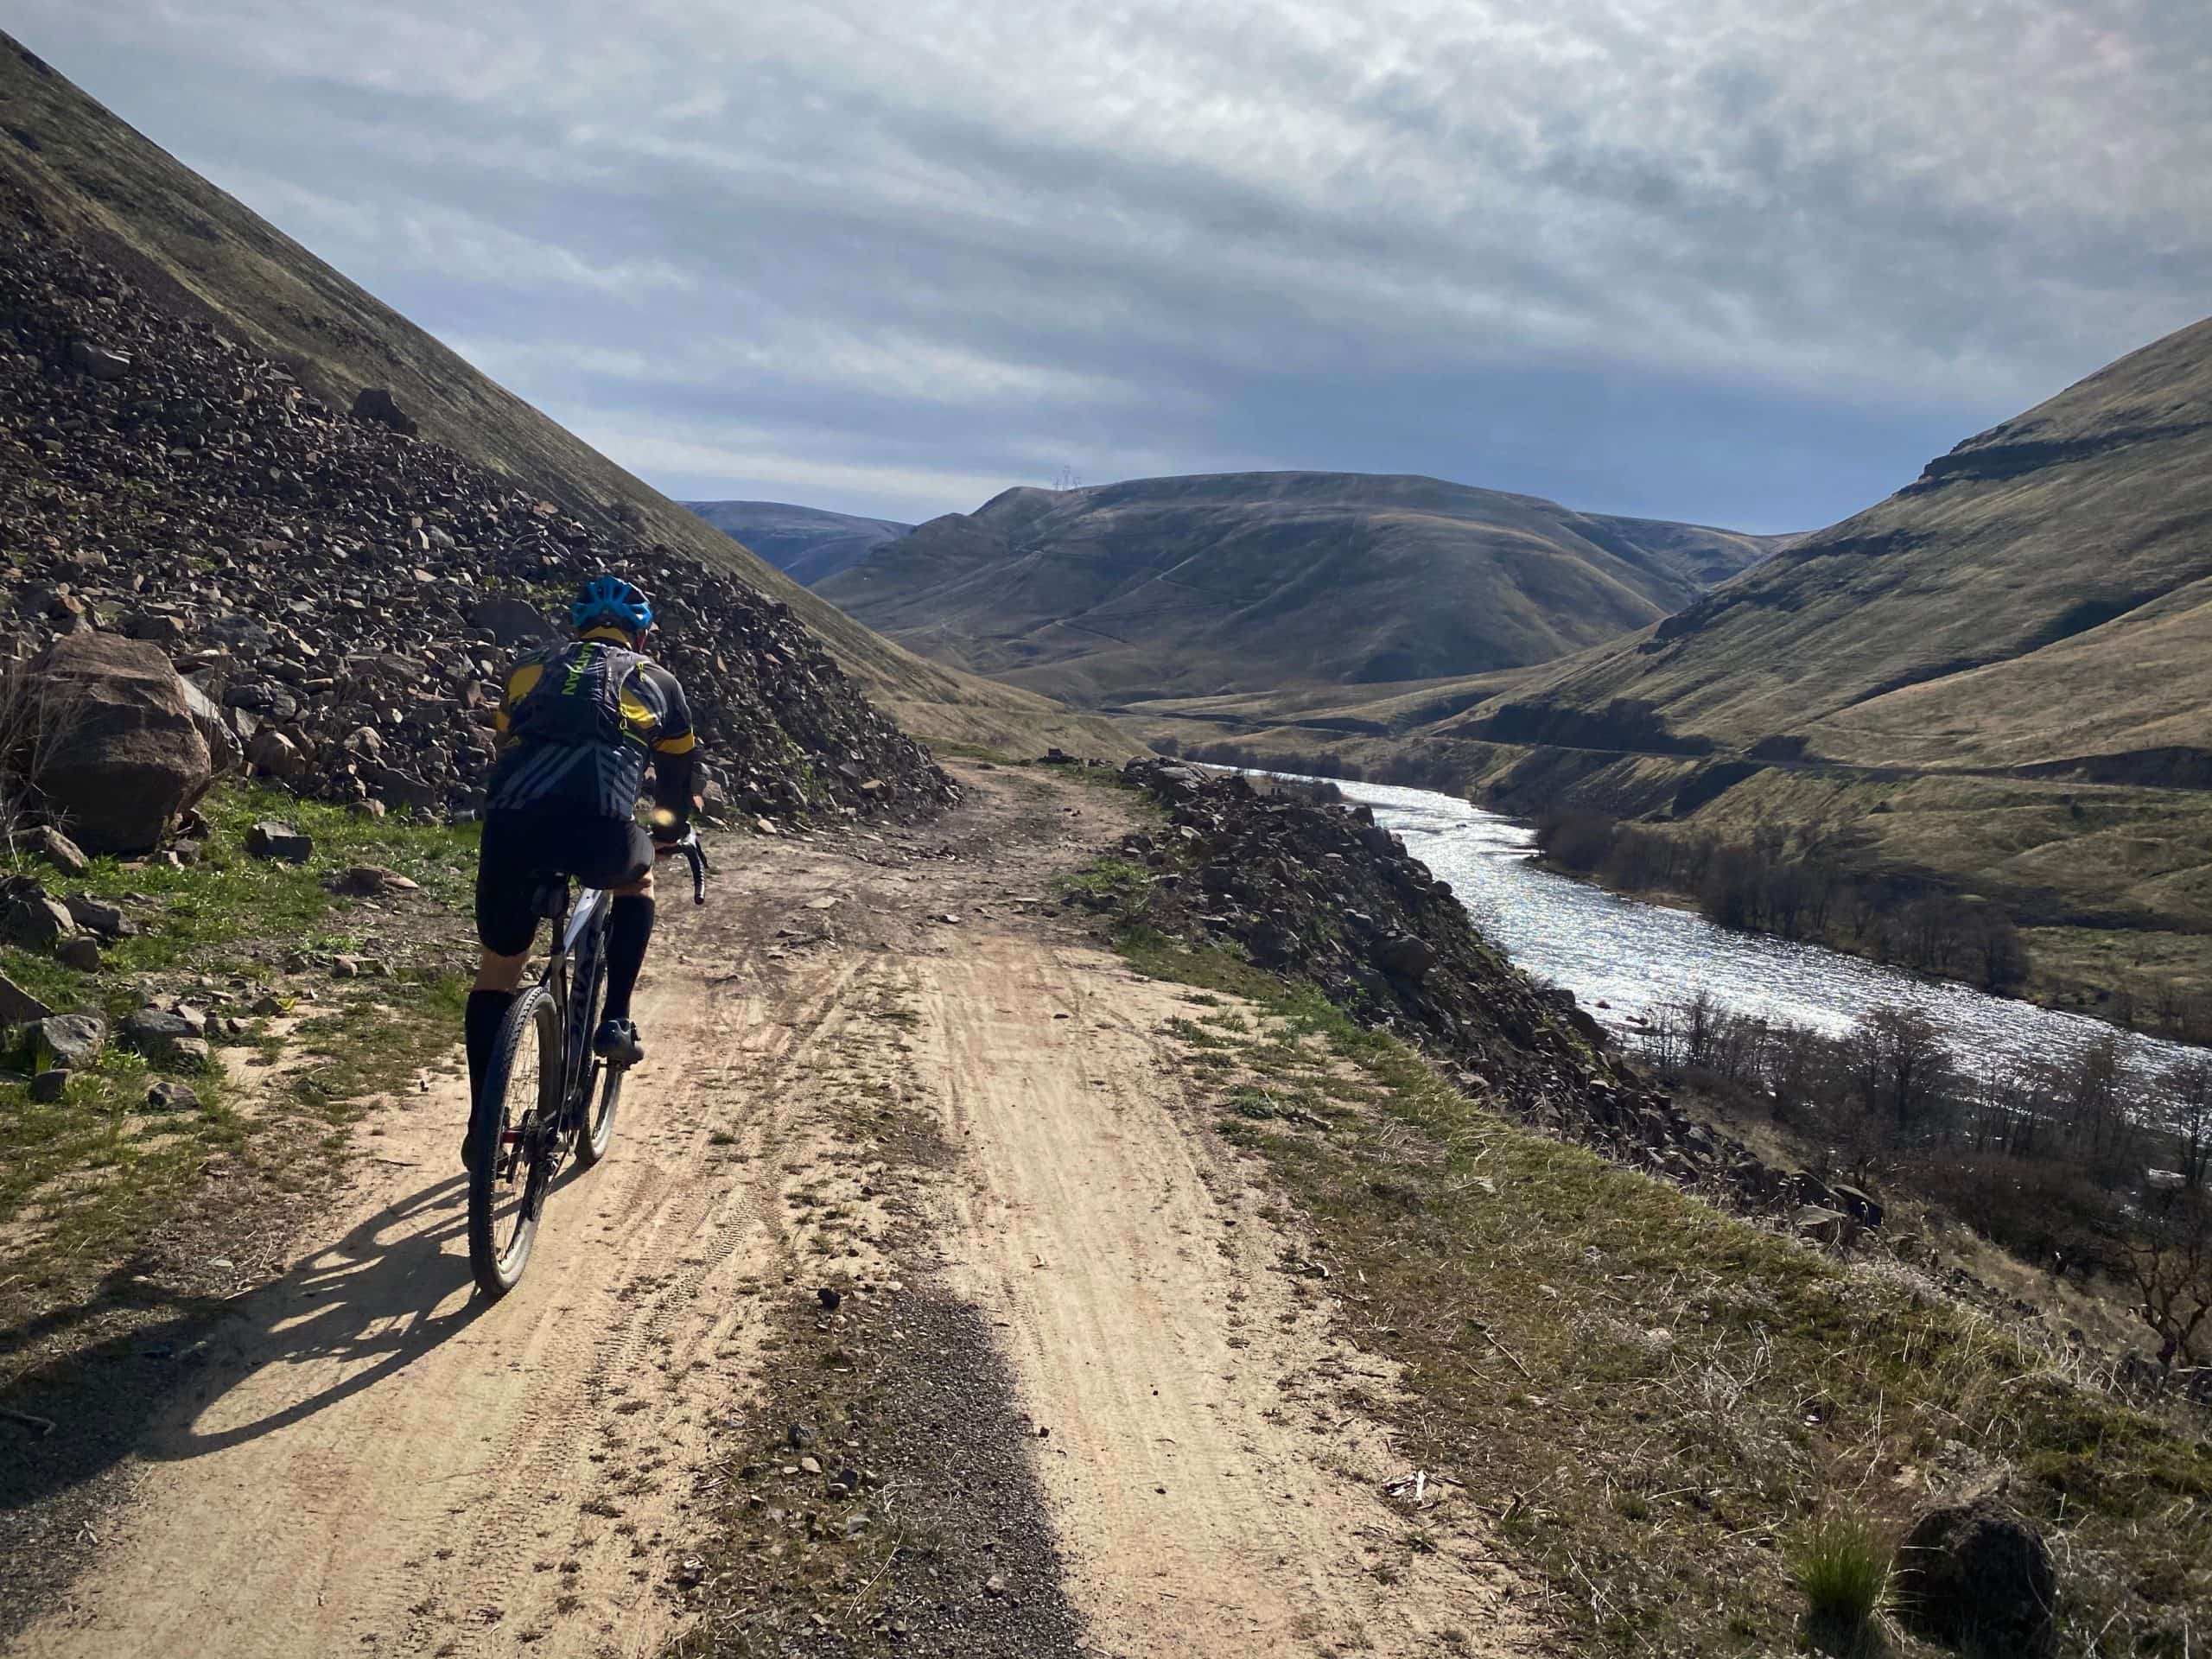 Gravel cyclist on double track trail along the Deschutes River near the Columbia River Gorge.